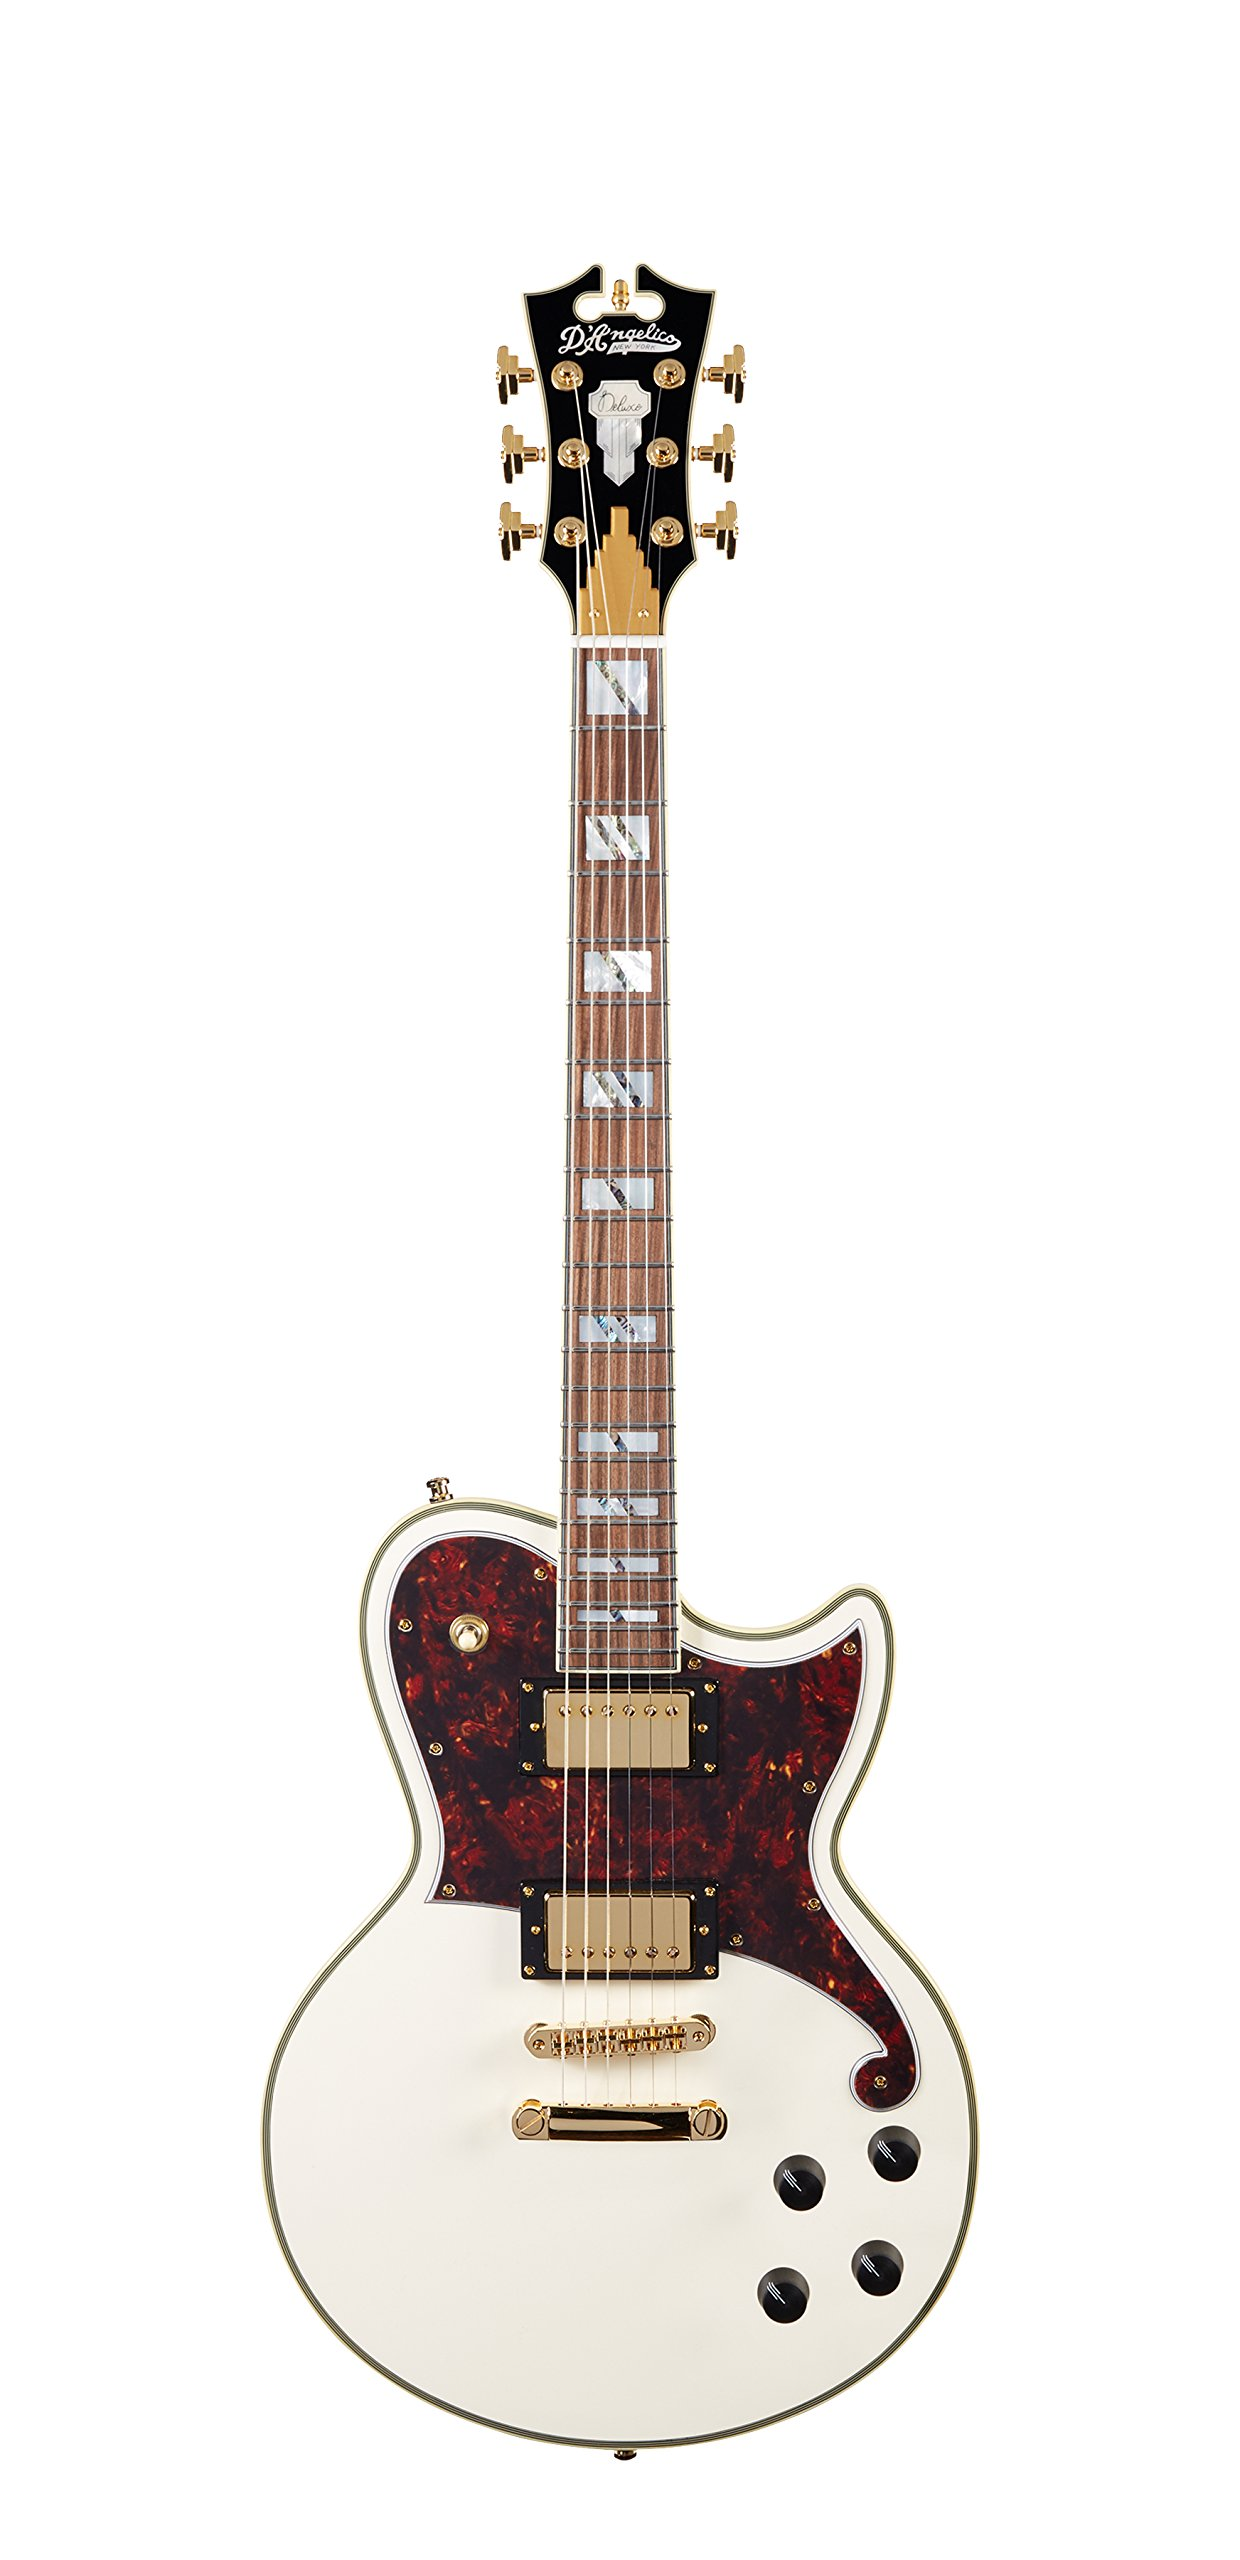 Cheap D Angelico Deluxe Atlantic Electric Guitar - Vintage White Black Friday & Cyber Monday 2019